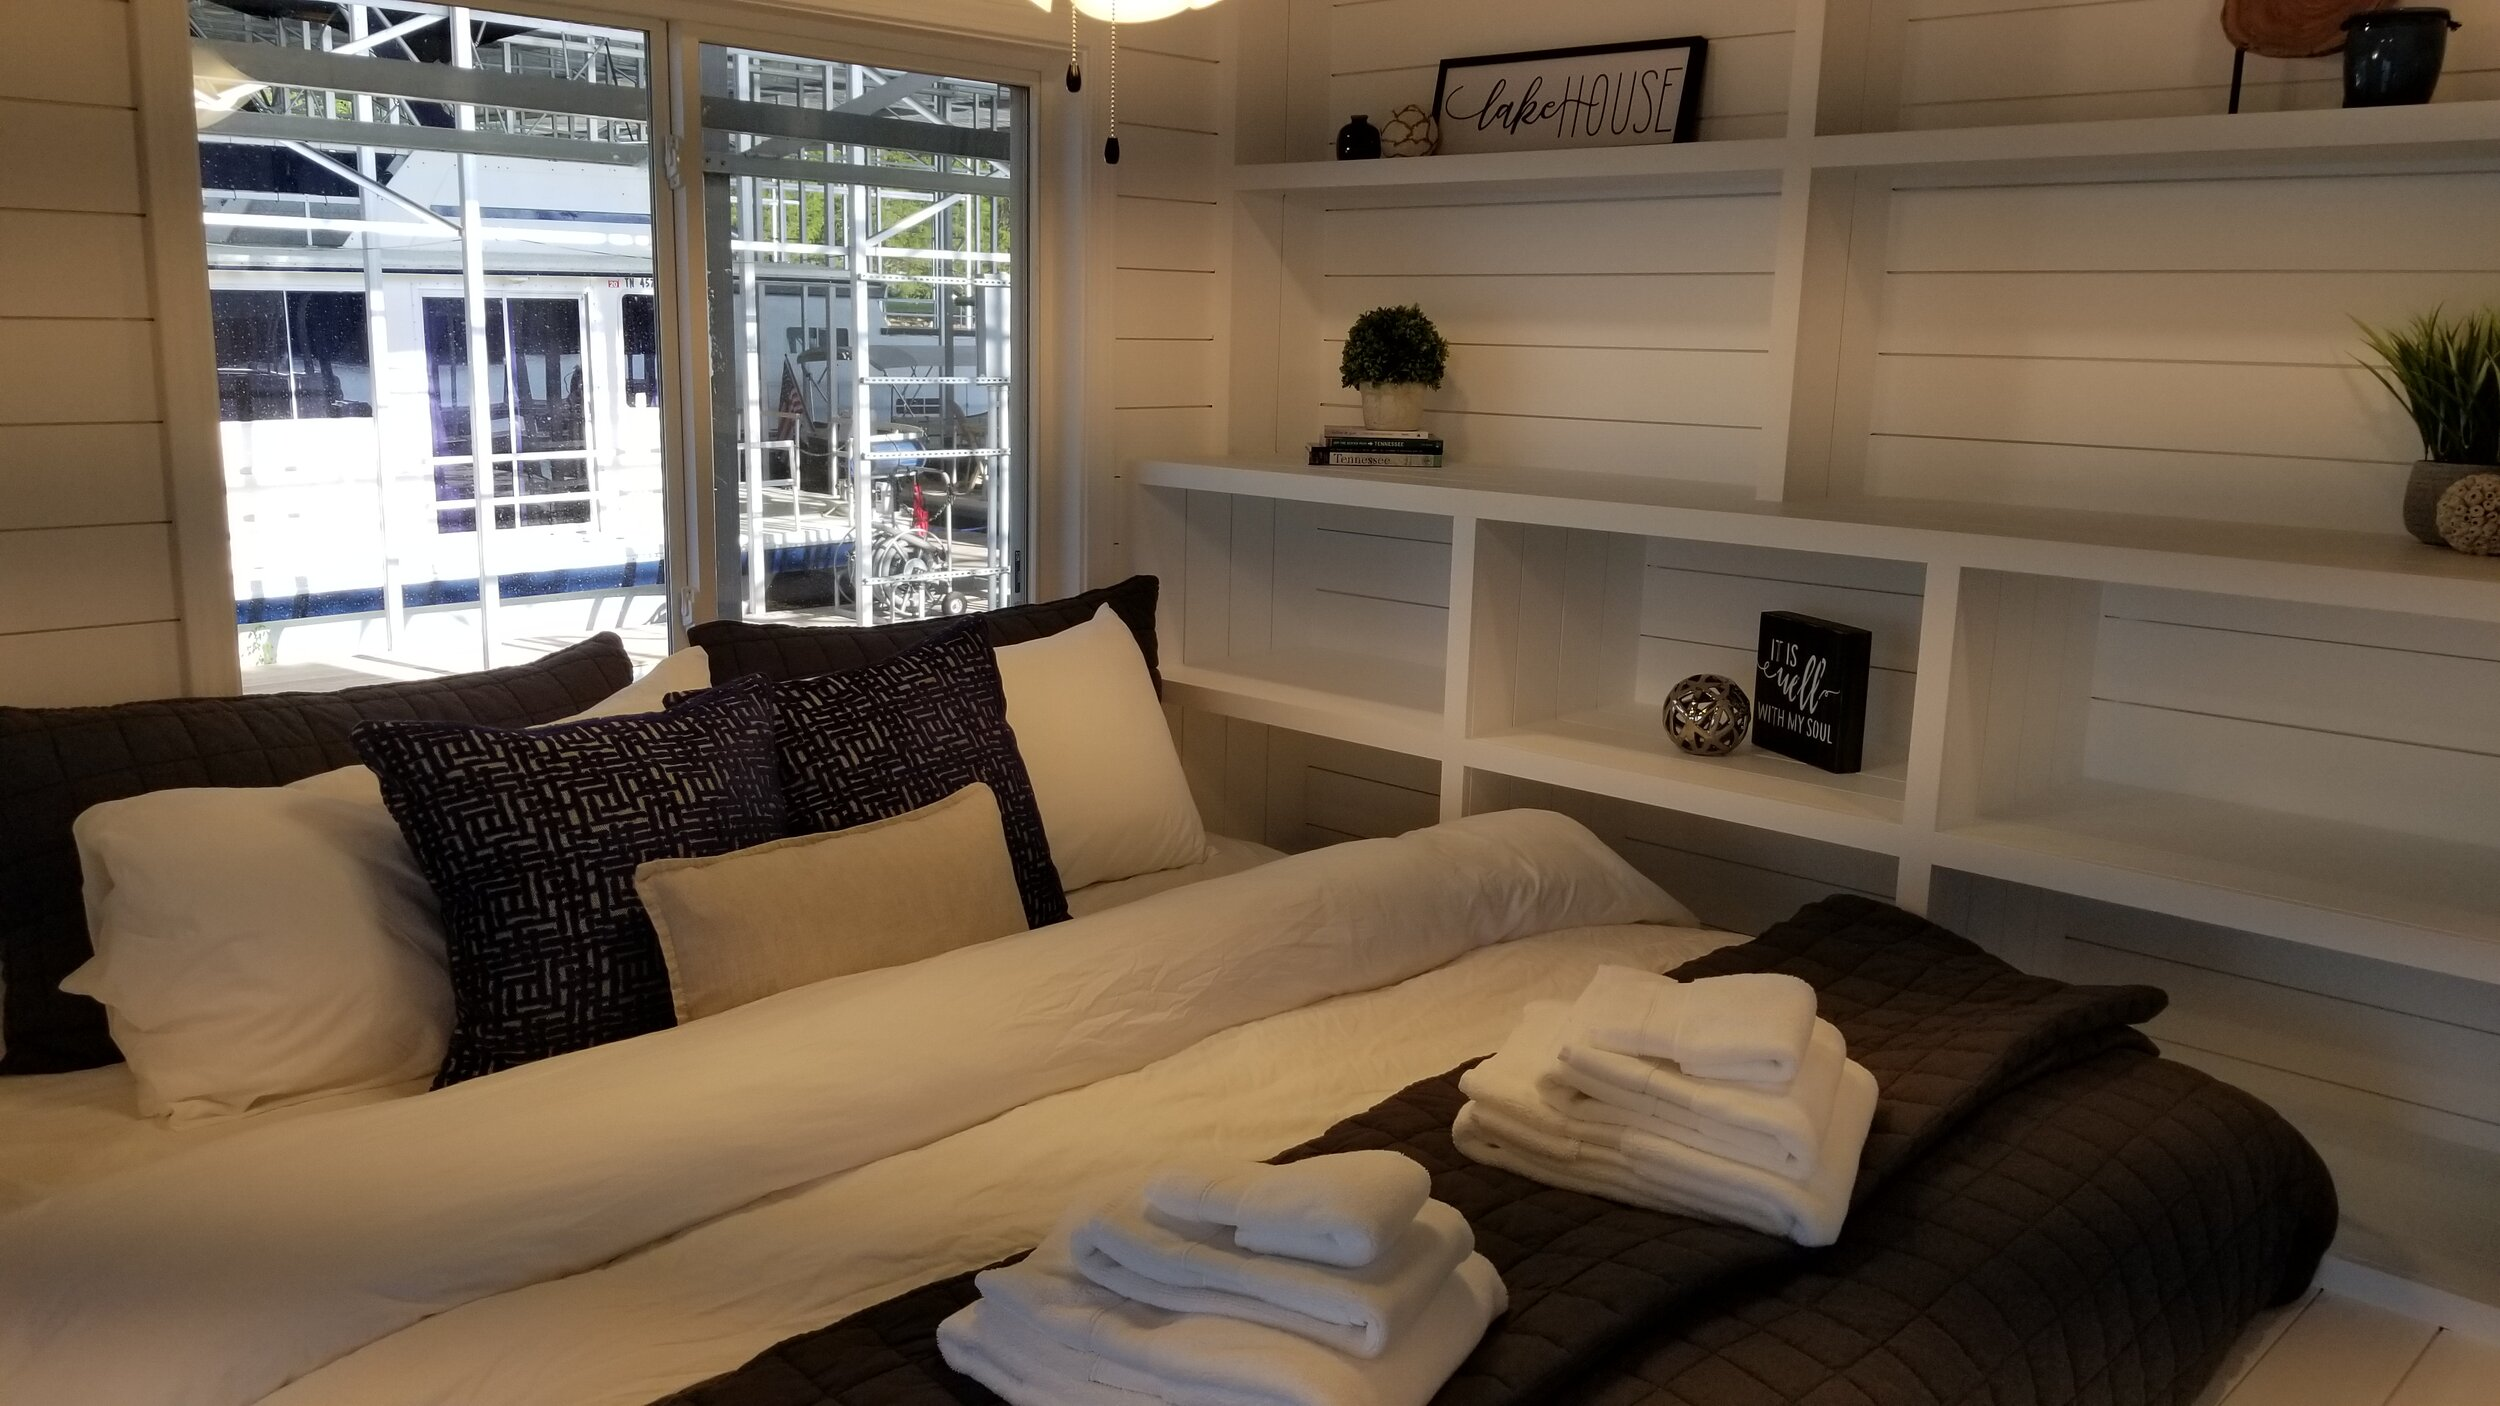 Wildwood Resort offers a stay in a luxurious houseboat complete with a full kitchen, washer and dryer and decks for relaxing and enjoying the views of the lake.